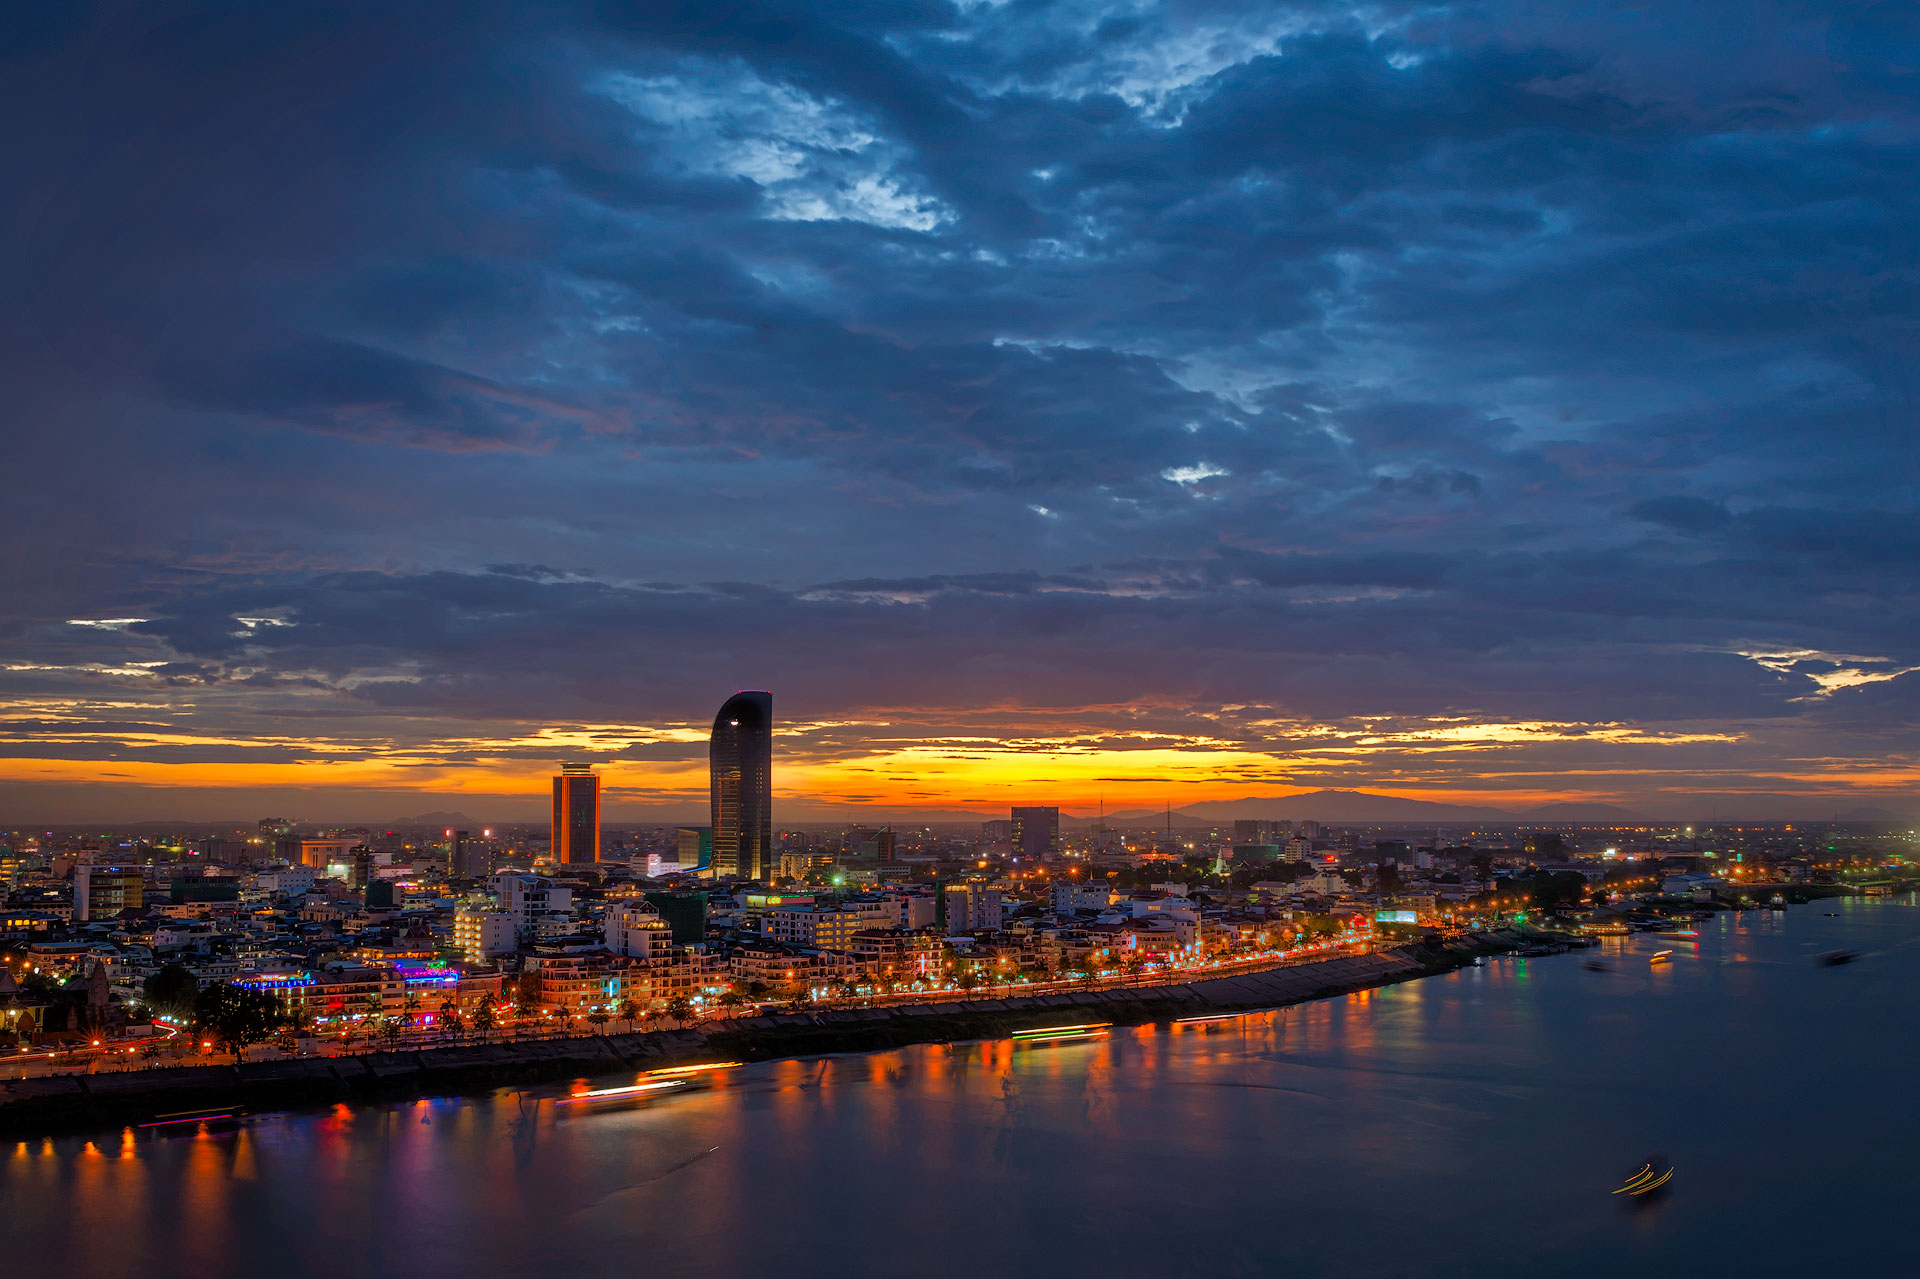 sunset-phnom-penh-1.jpg